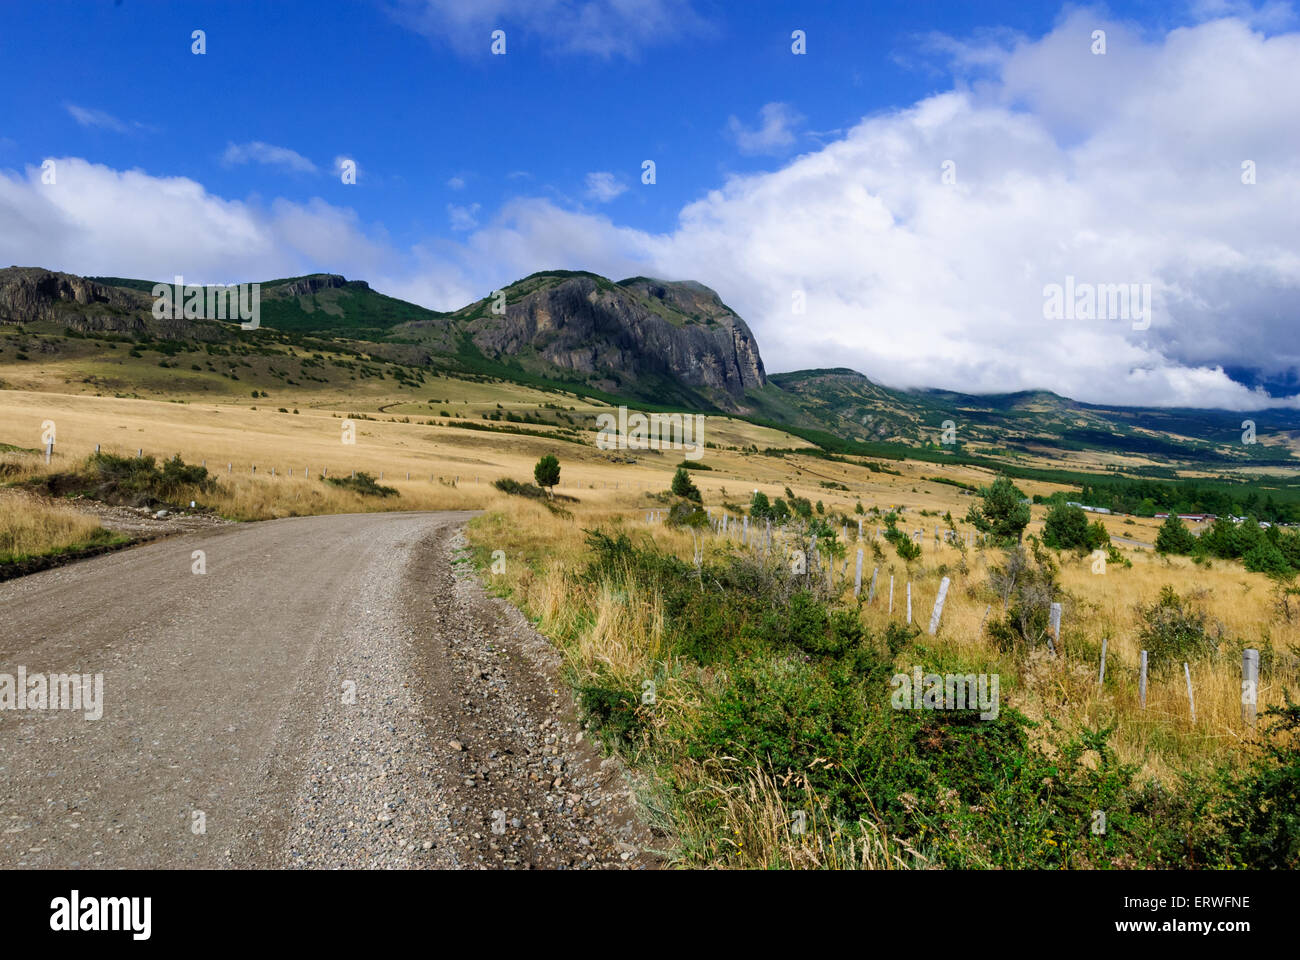 Carretera Austral with beautiful cloudy nature landscape in Patagonia, Chile - Stock Image